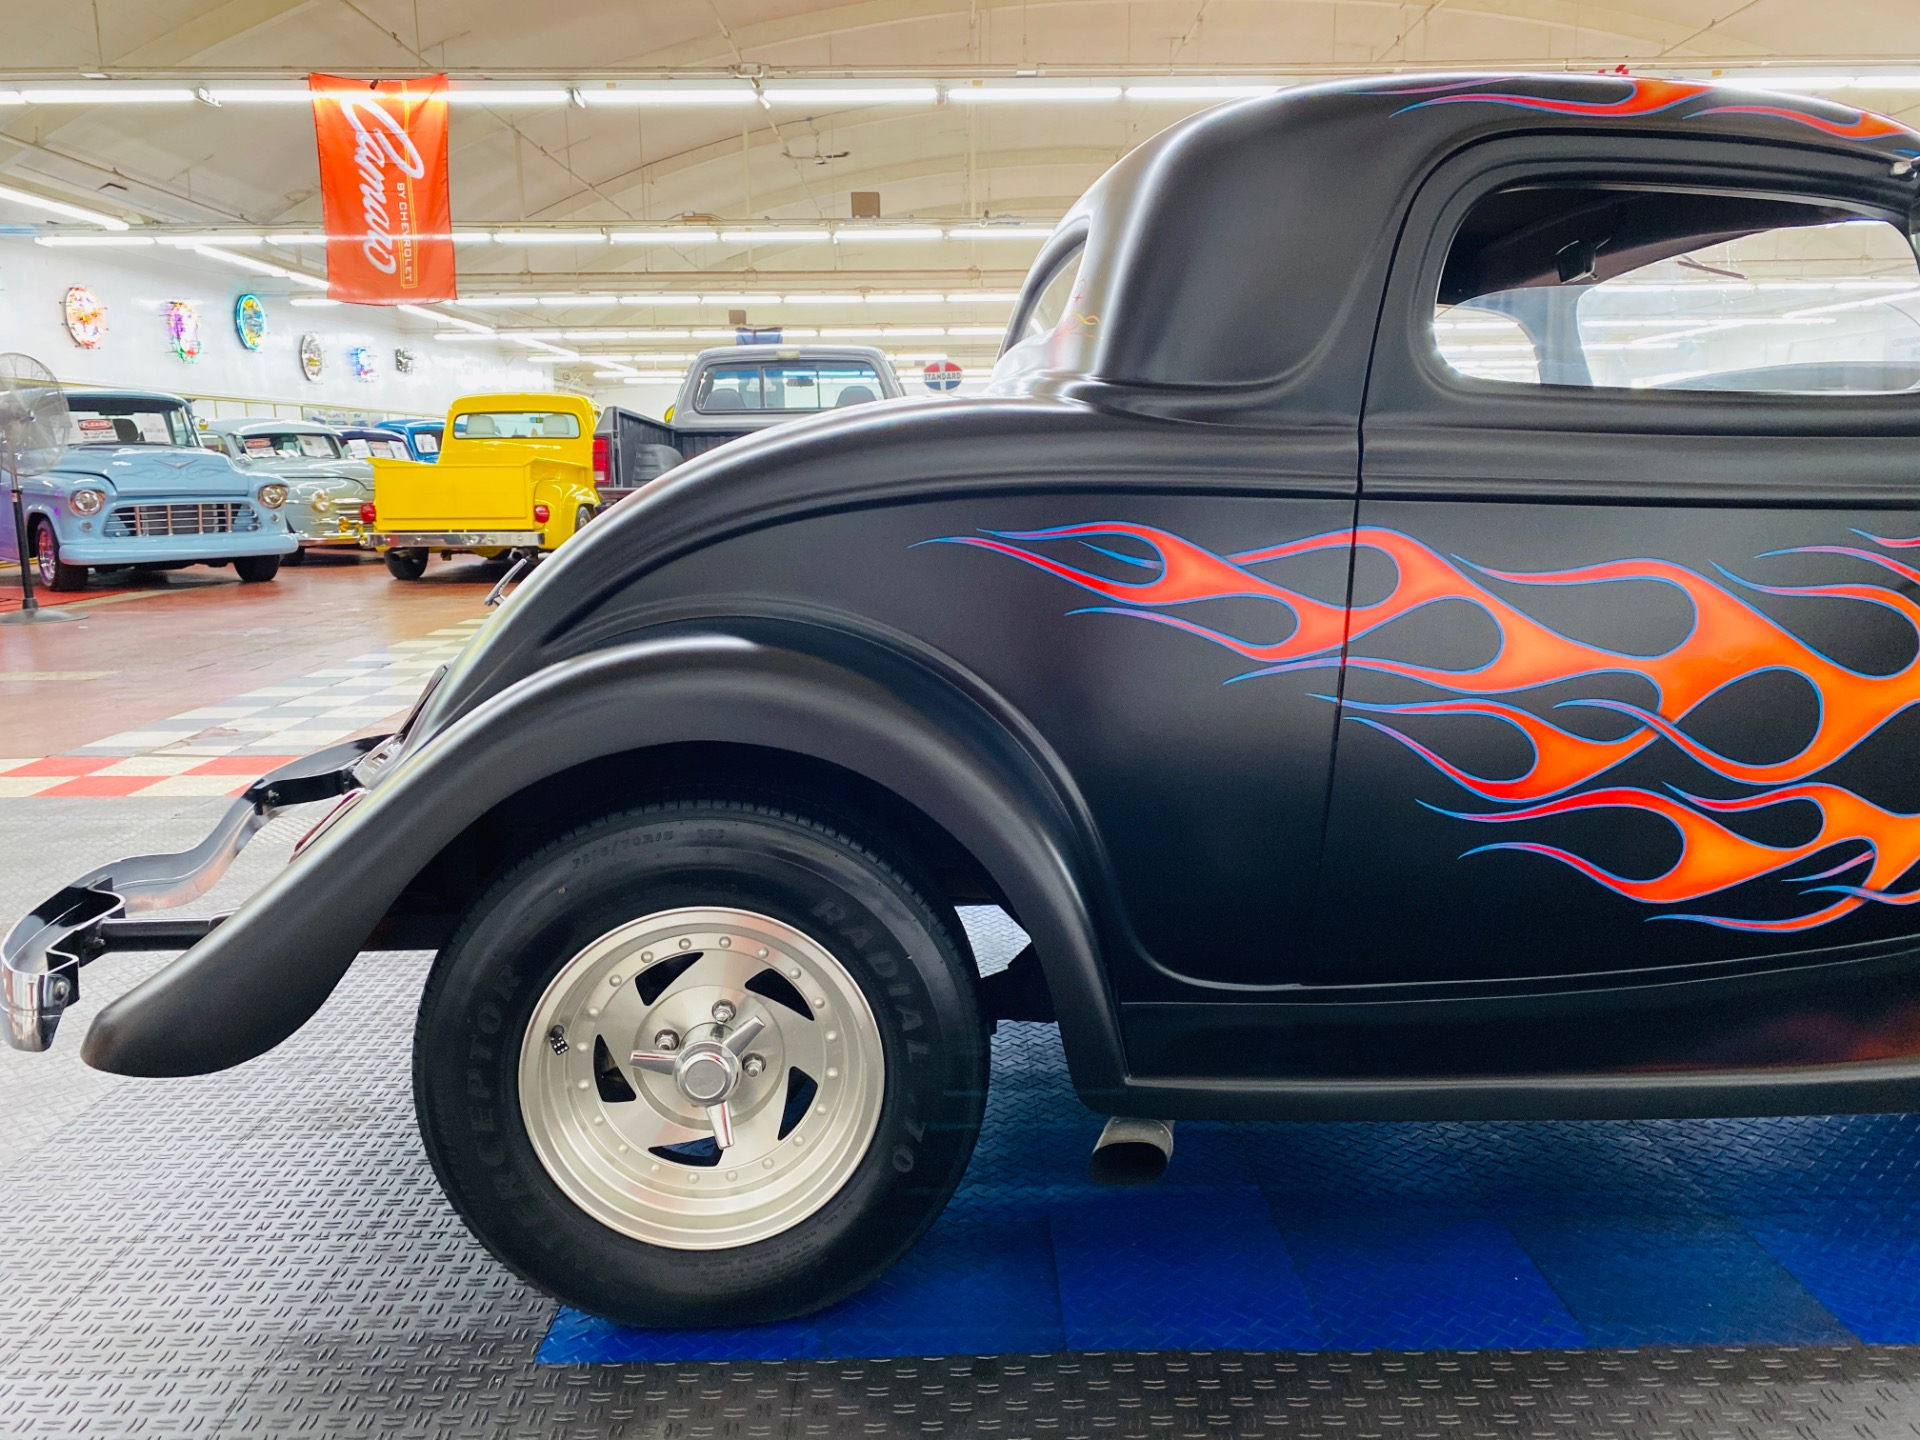 Used 1934 FORD Hot Rod / Street Rod -OLD SCHOOL STREET ROD - VERY RELIABLE - CUSTOM FLAMES - SEE VIDEO | Mundelein, IL